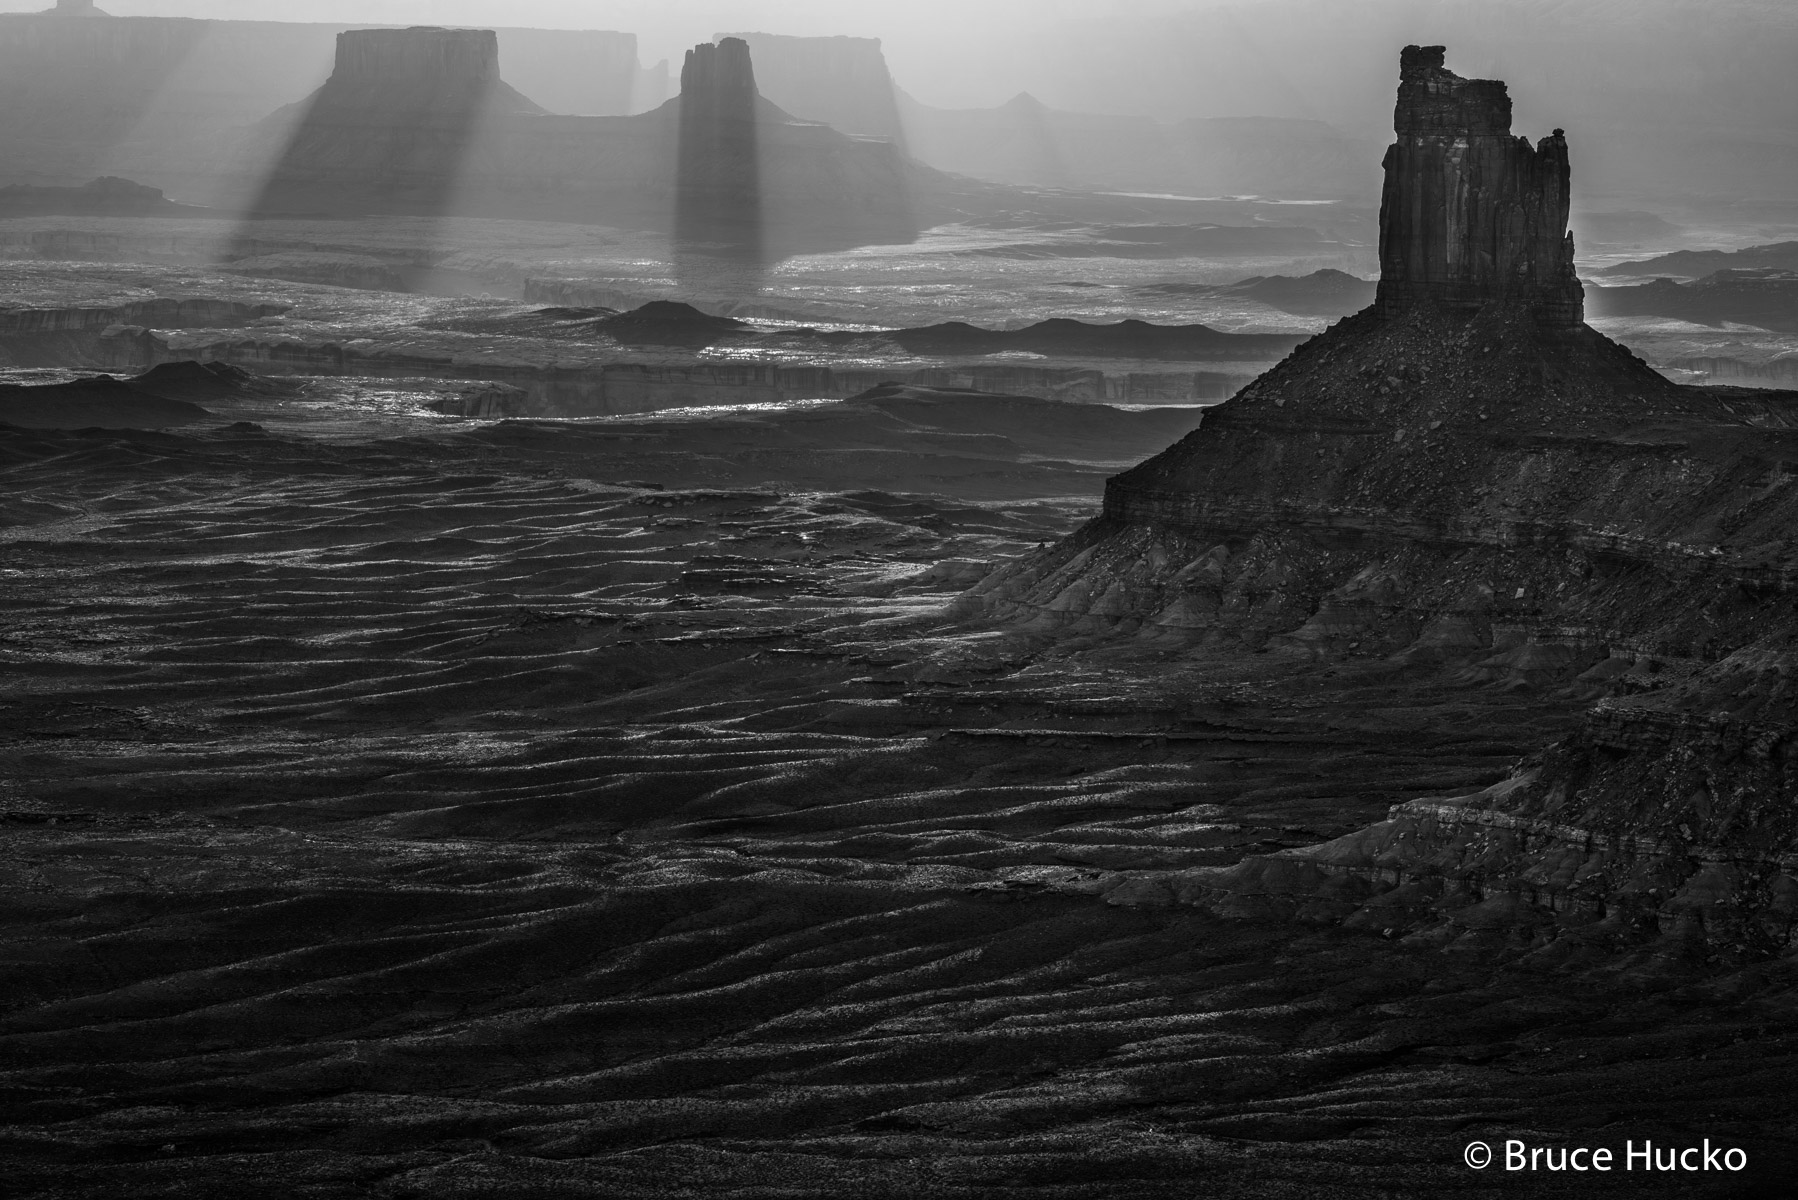 Arches BW,Arches National Park,Canyonlands BW,Canyonlands National Park, photo